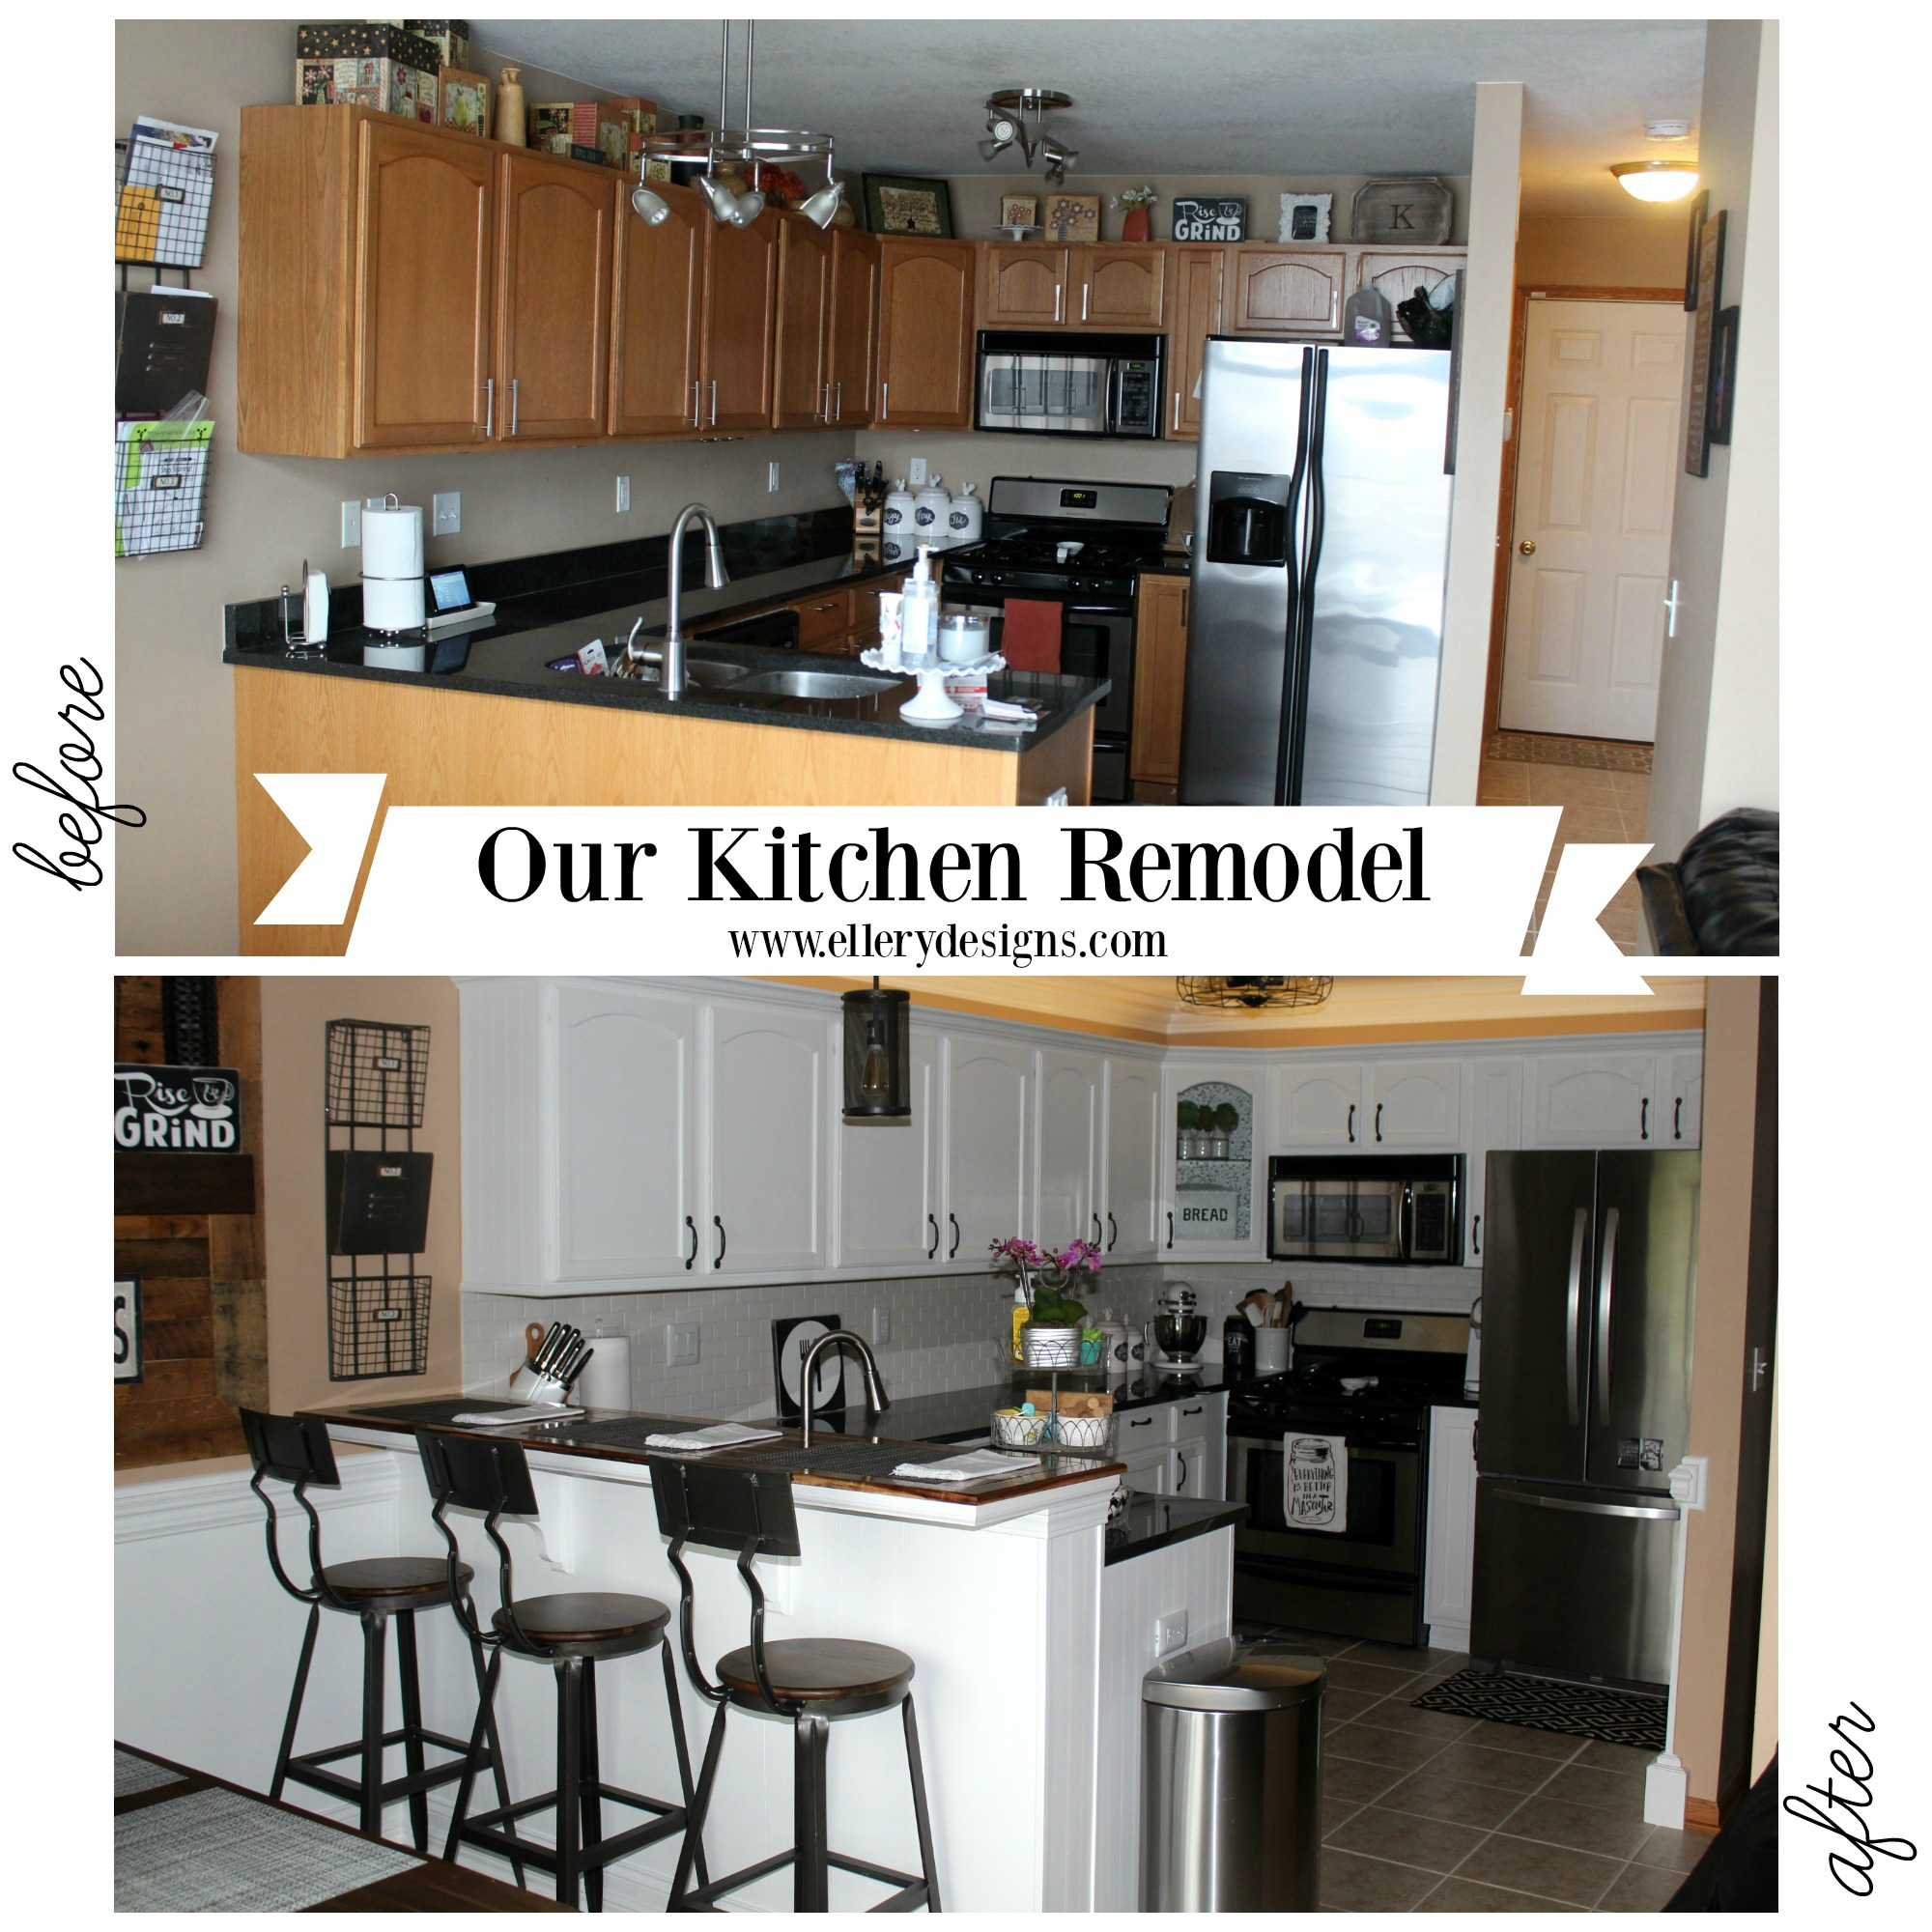 Kitchen Remodel Ideas 2016: Our DIY Kitchen Remodel